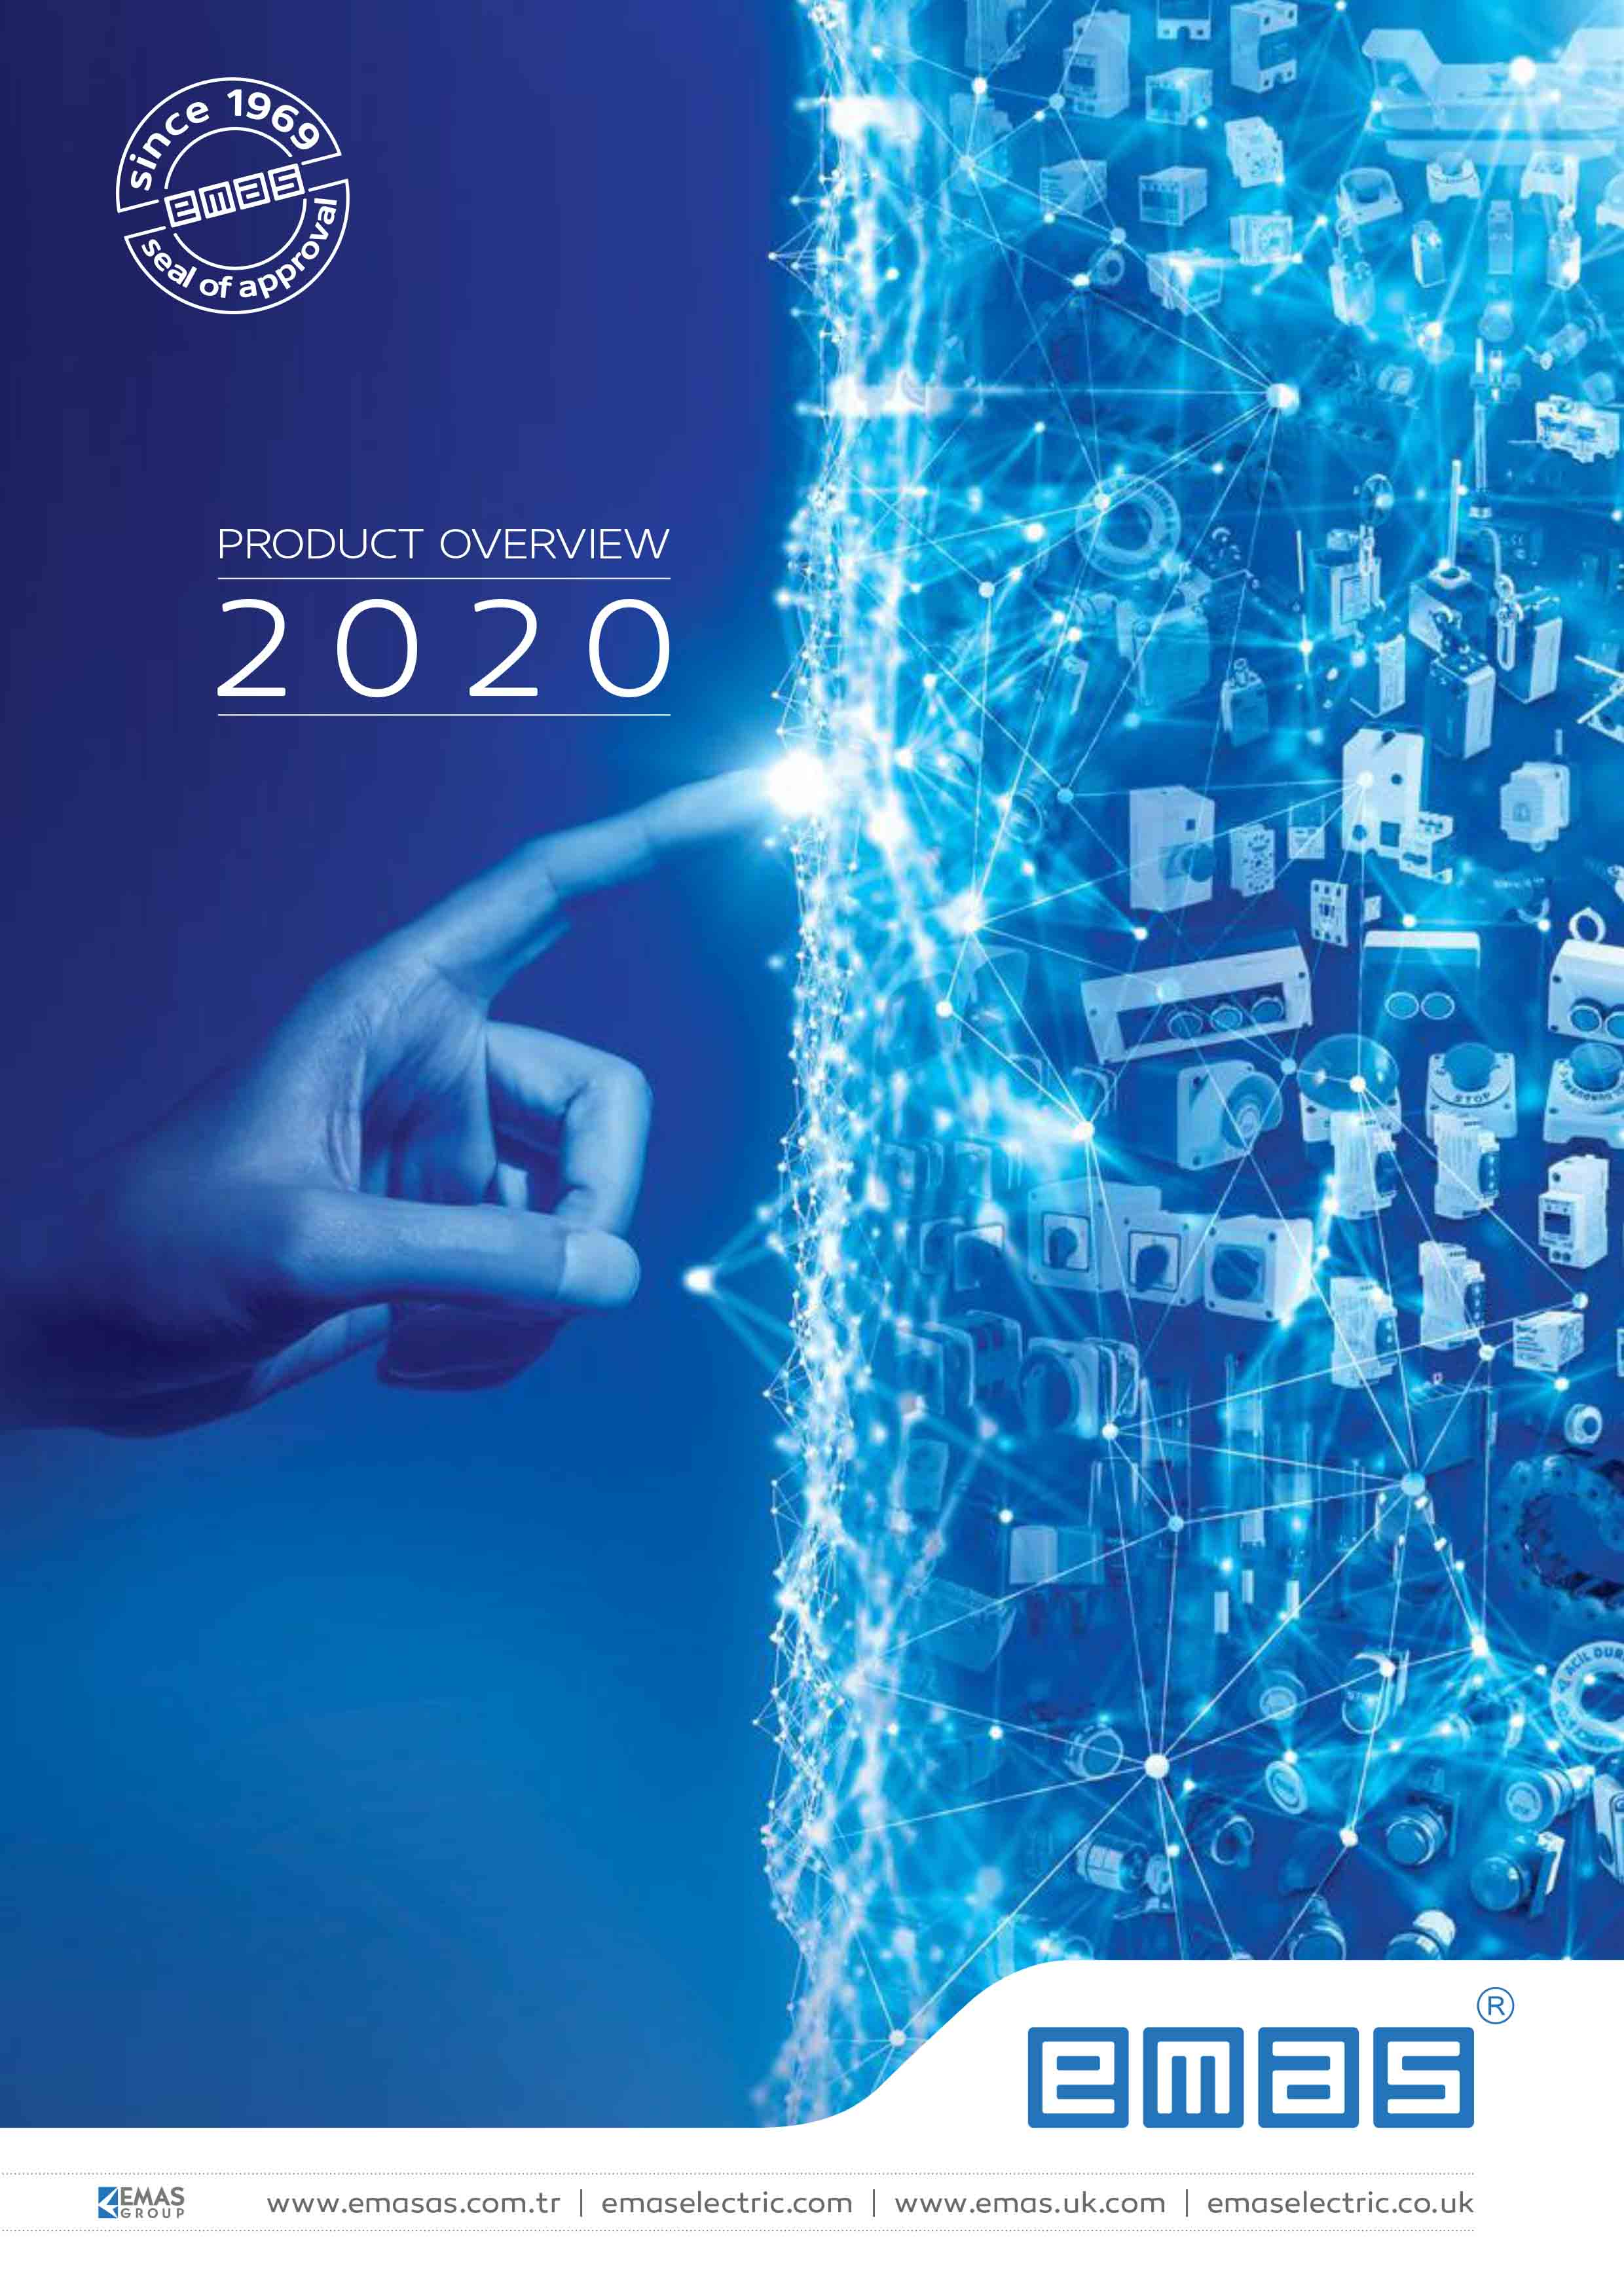 Product overview Emas 2020